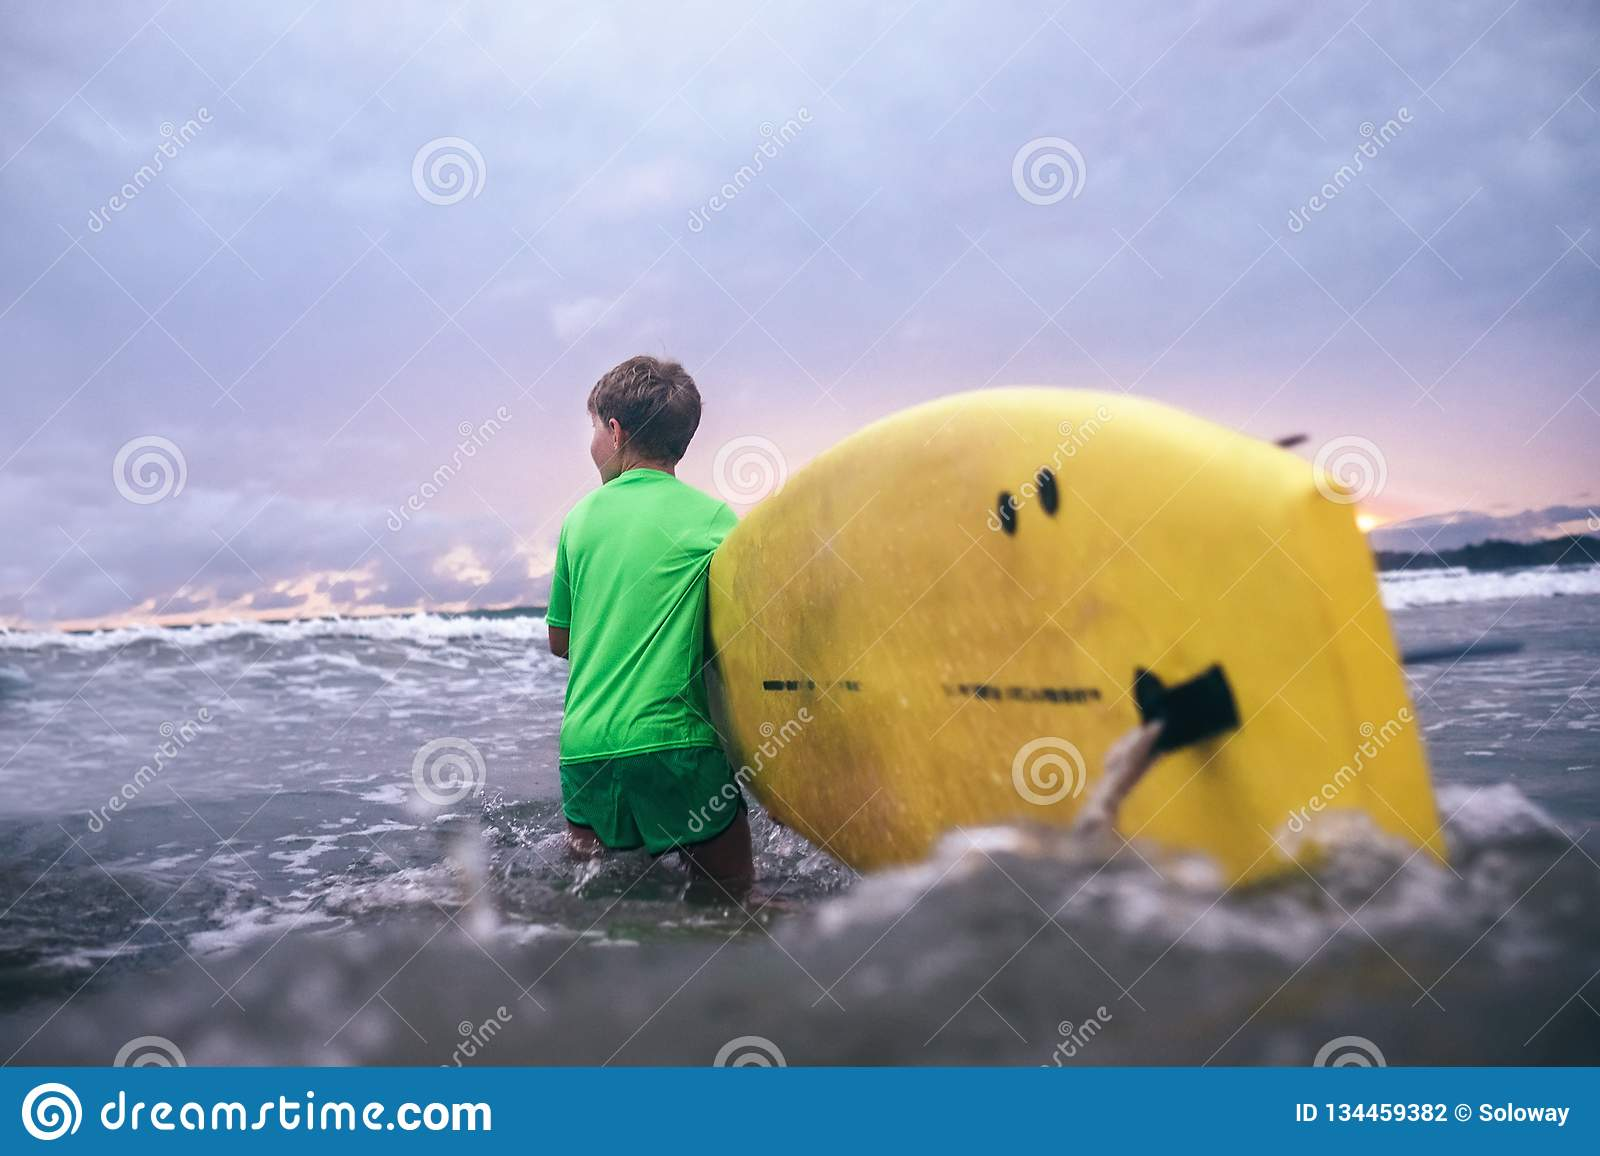 Little boy carries yellow surf board into ocean waves. Surfing First steps concept